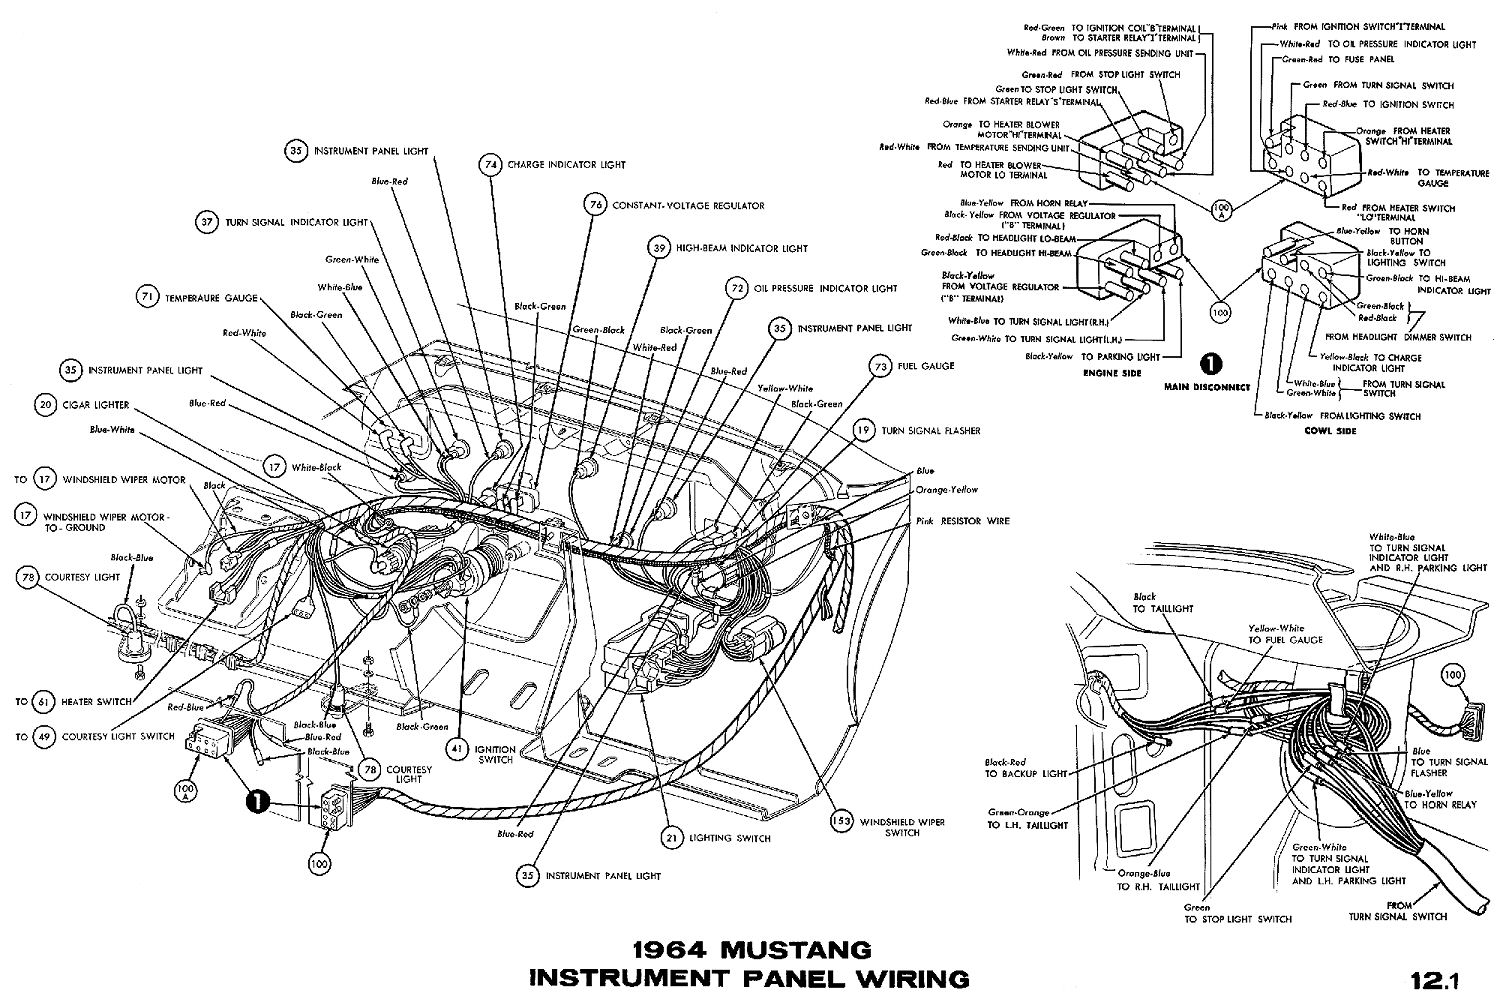 1970 Thunderbird Instrument Cluster Diagram Wiring Schematic 1969 Ford Galaxie Auto Electrical Mustang 1966 F100